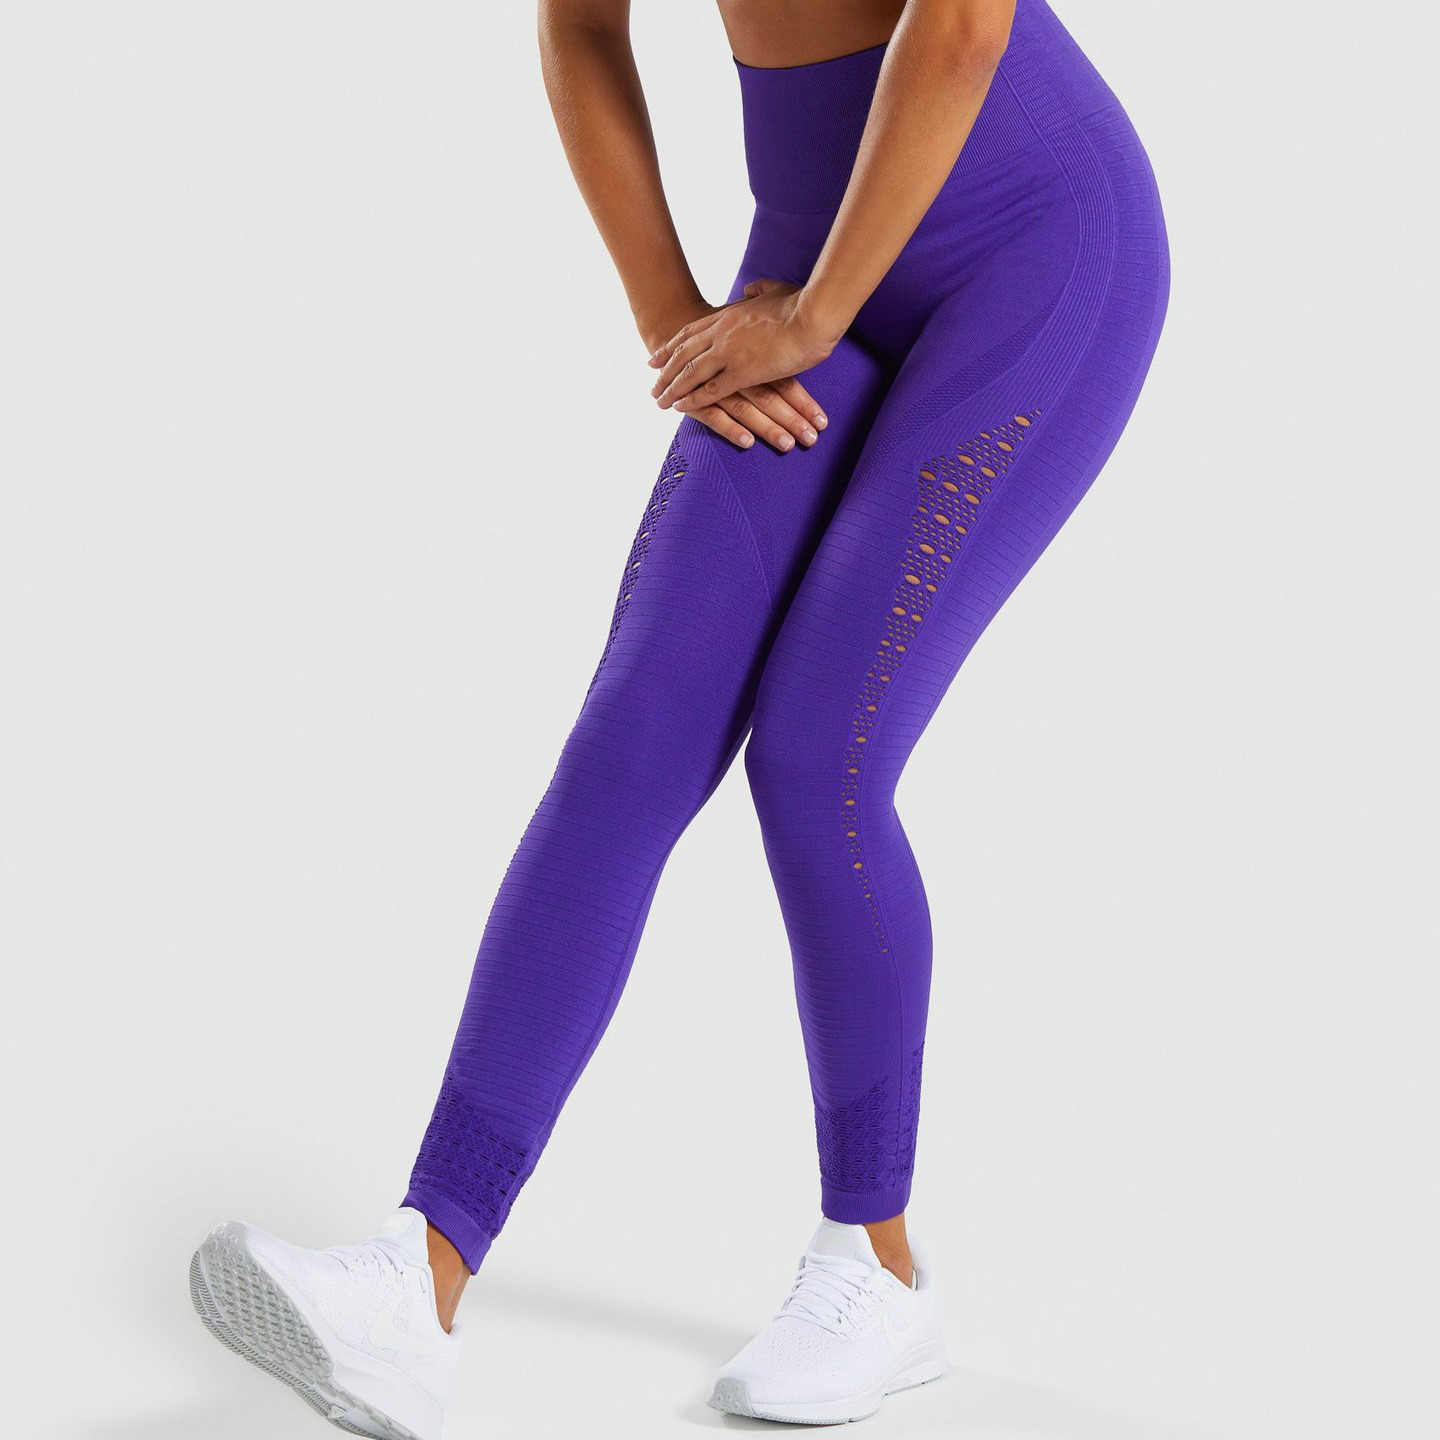 691158a158c70 ... Women New Energy Seamless Leggings High Waist Women Yoga Pants Booty  Leggings Super Stretchy Gym Tights ...